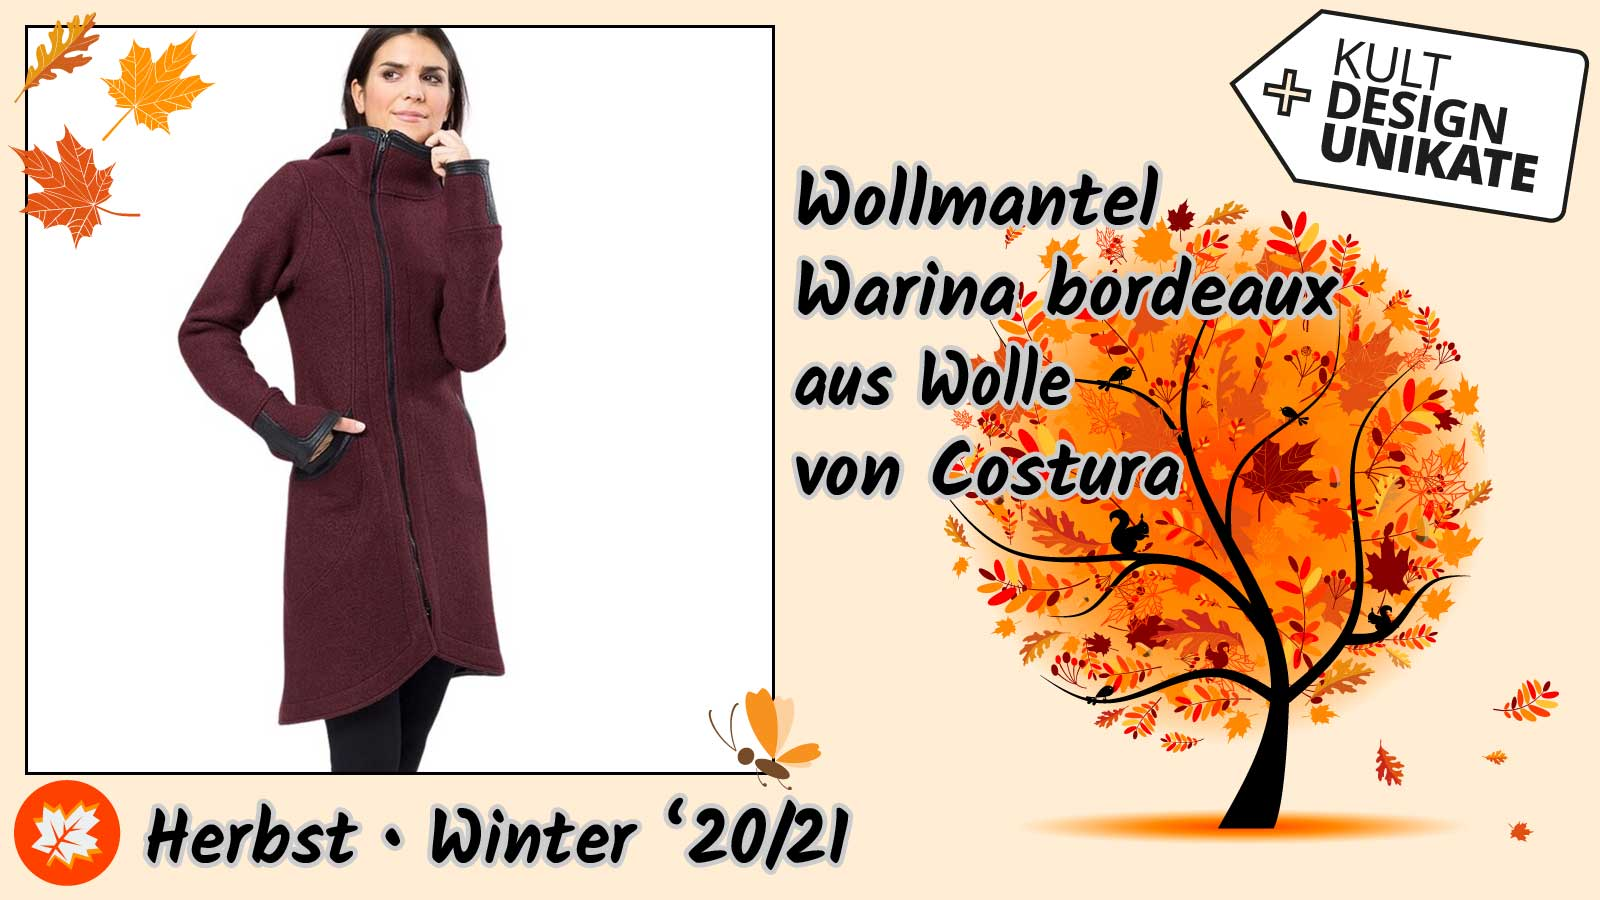 Costura-Wollmantel-Warina-bordeaux